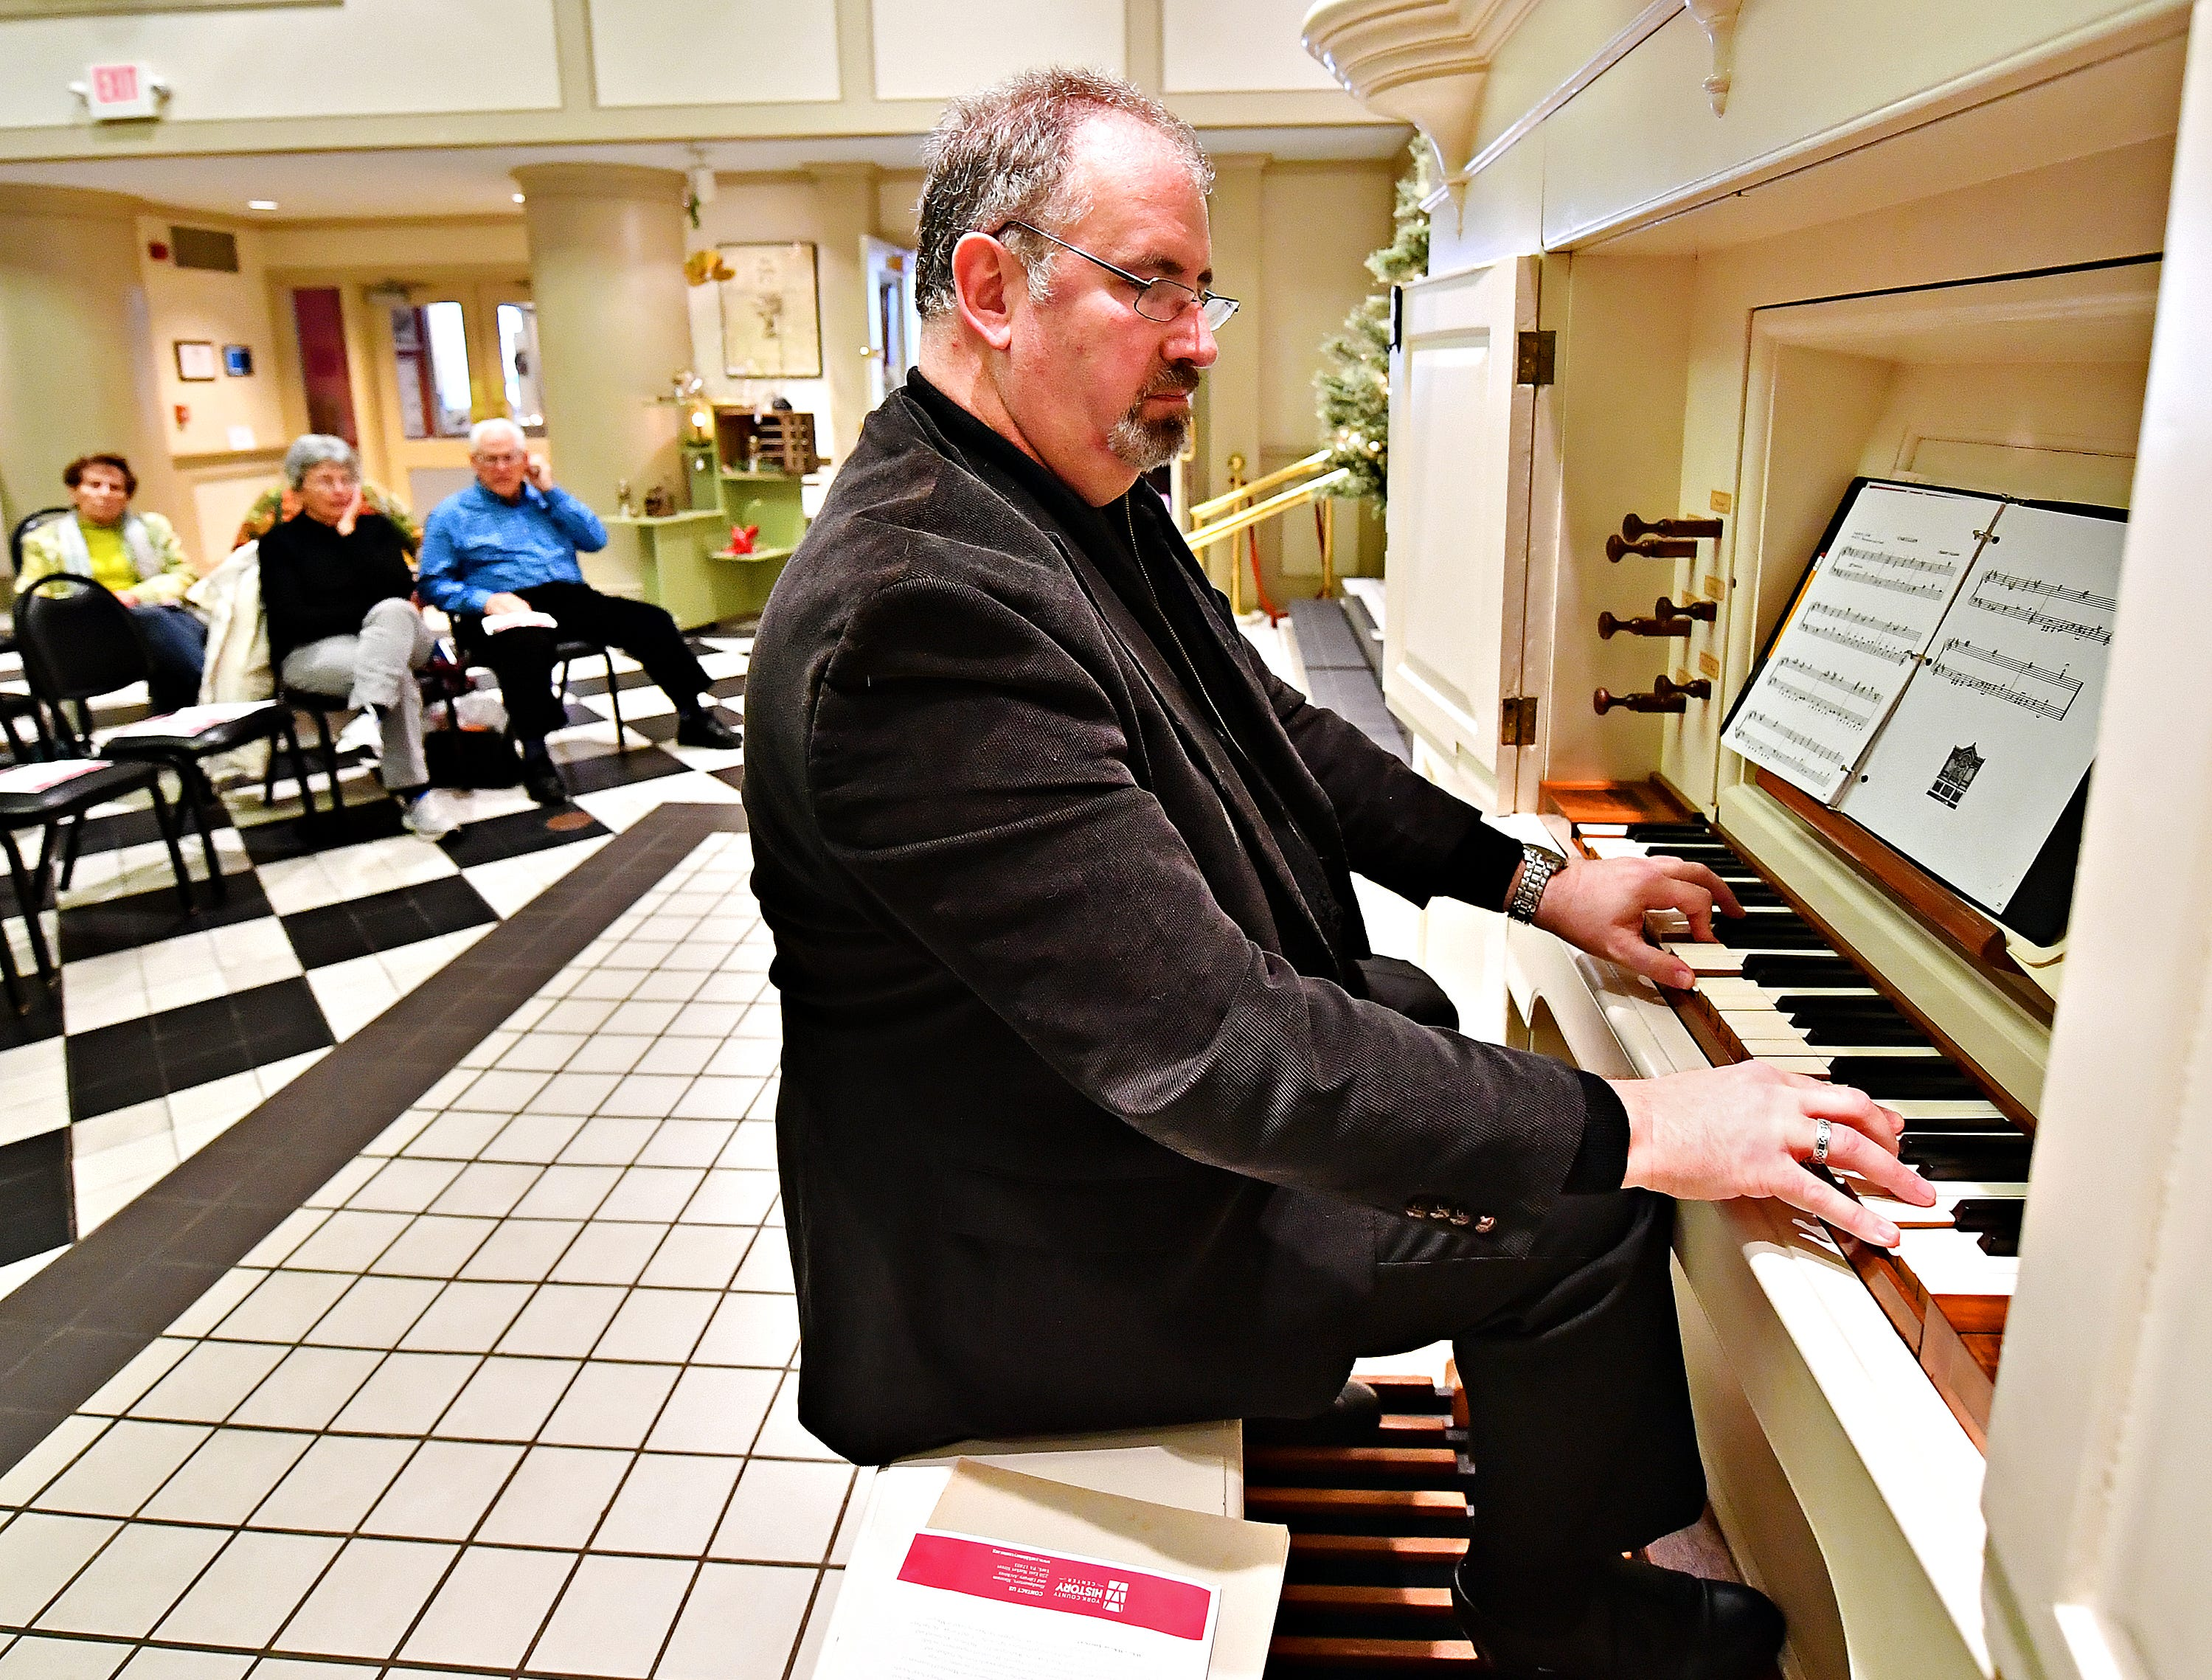 The York County History Center launches its campaign to raise $250,000 for the restoration of the David Tannenberg Organ by offering a free performance by Artist Victor Fields on Giving Tuesday at the history center in York City, Tuesday, Nov. 27, 2018. Dawn J. Sagert photo